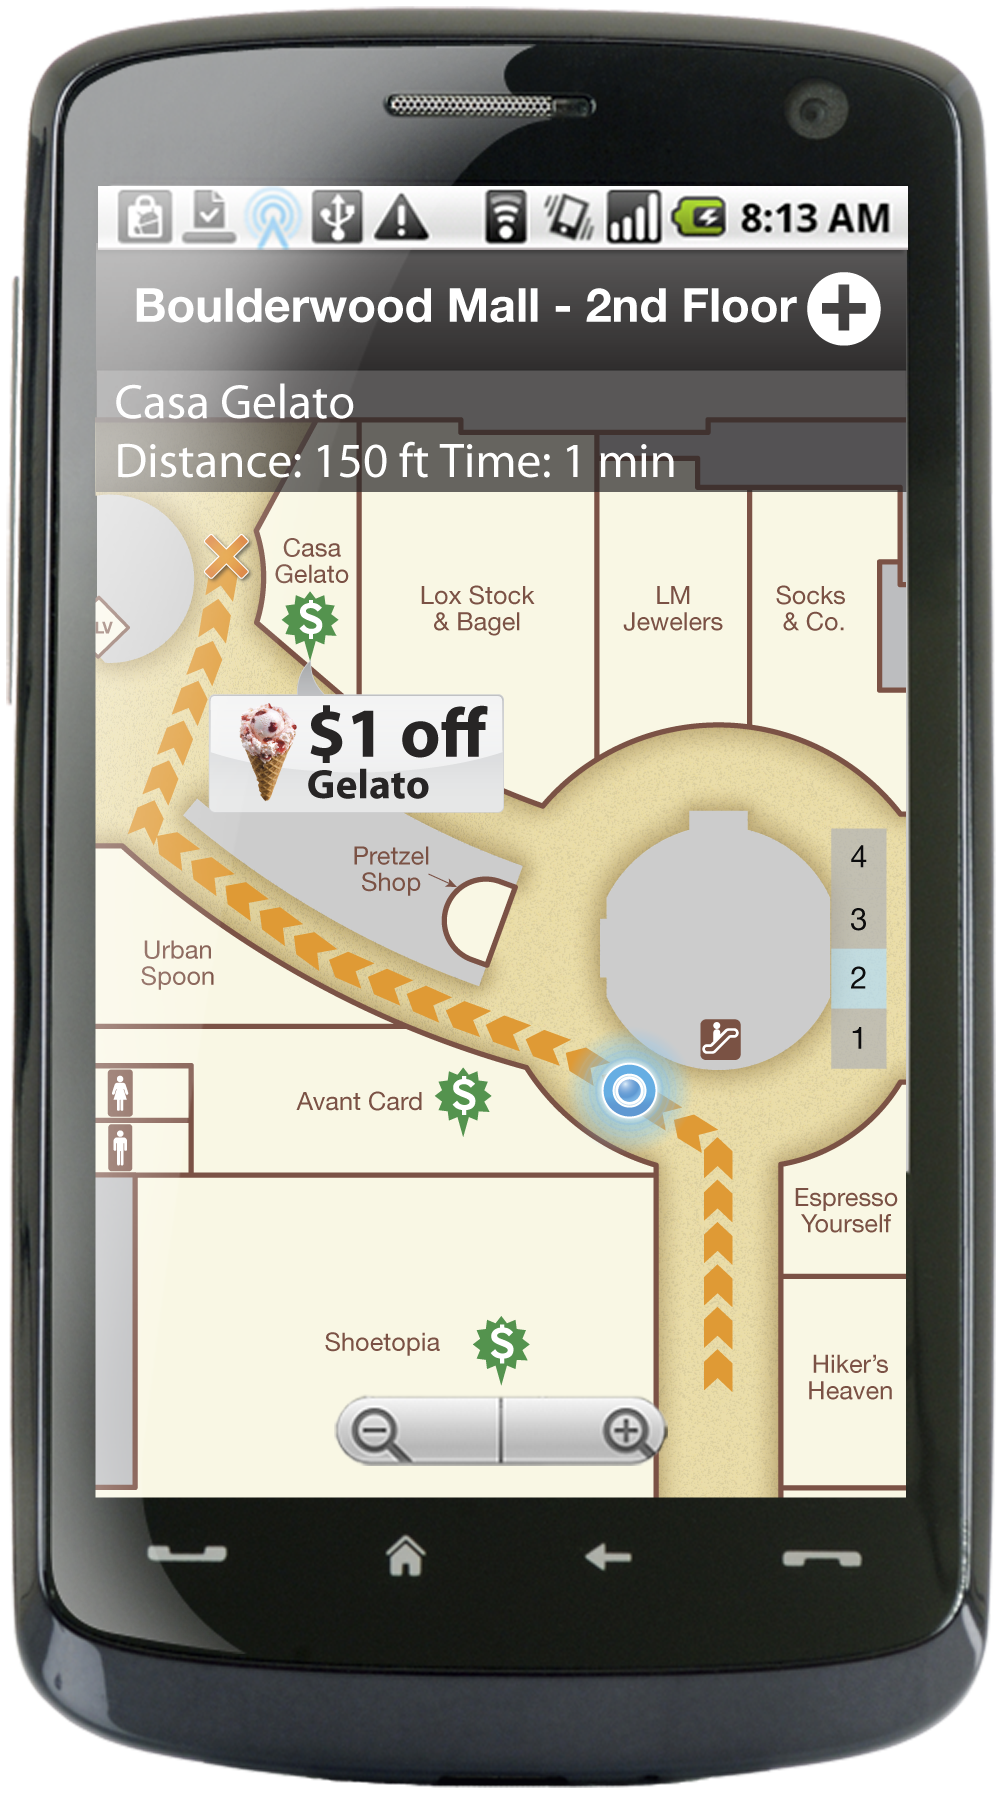 Wifarer mall map with - Xconomy on real estate app, employment app, mall maps windows phone 8,